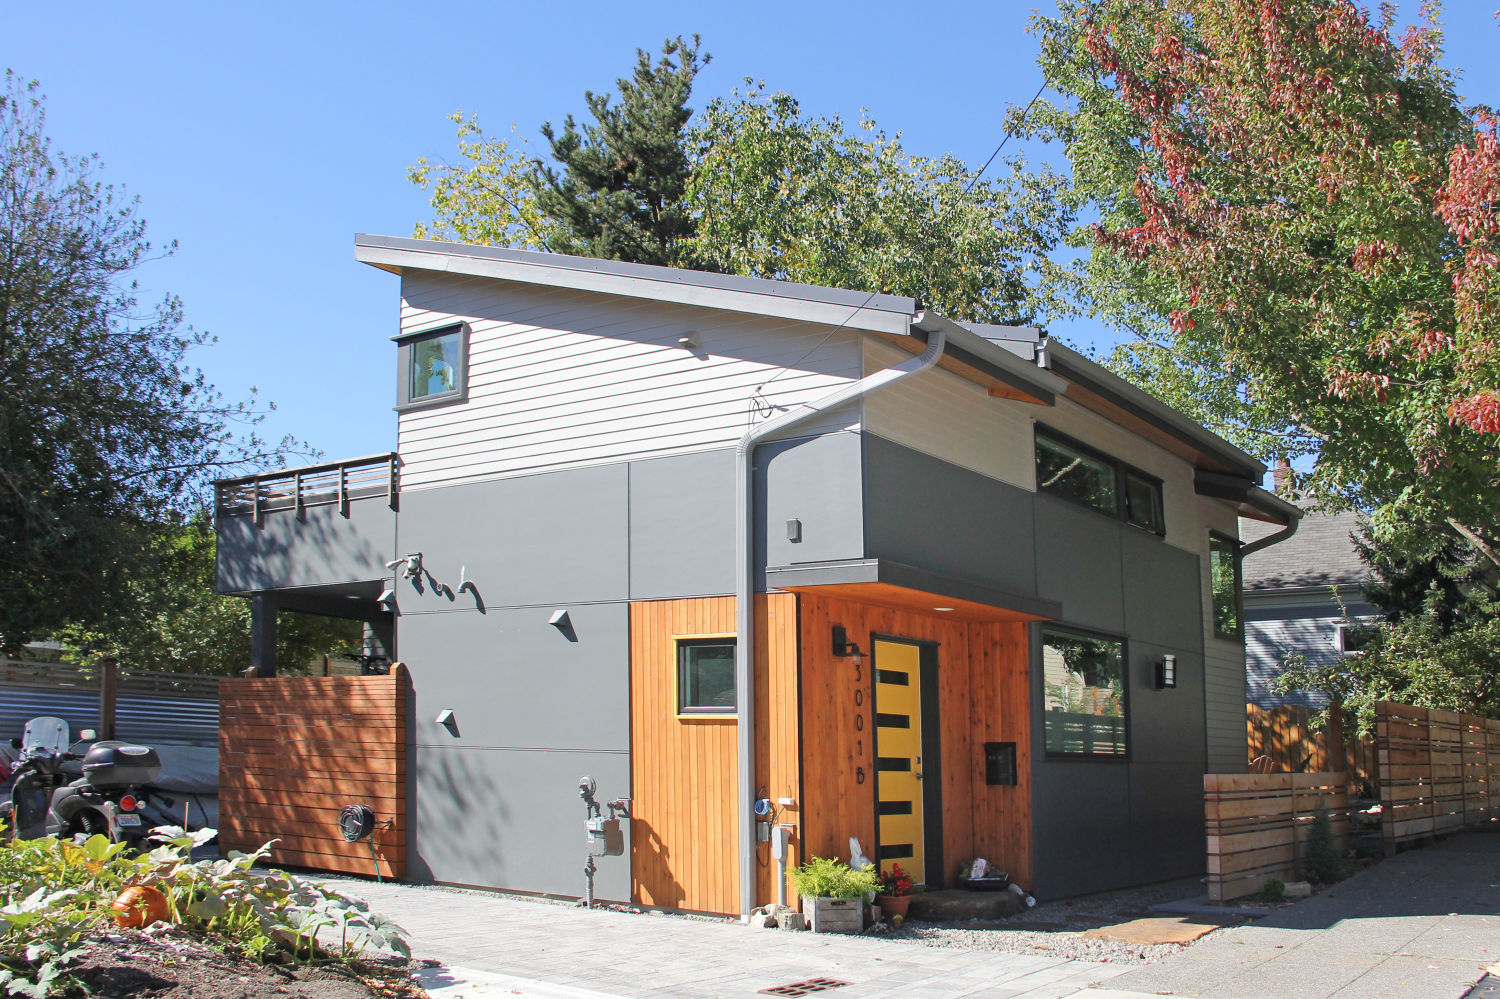 Live the Tiny Home Dream in Your Own Backyard   Seattle Met